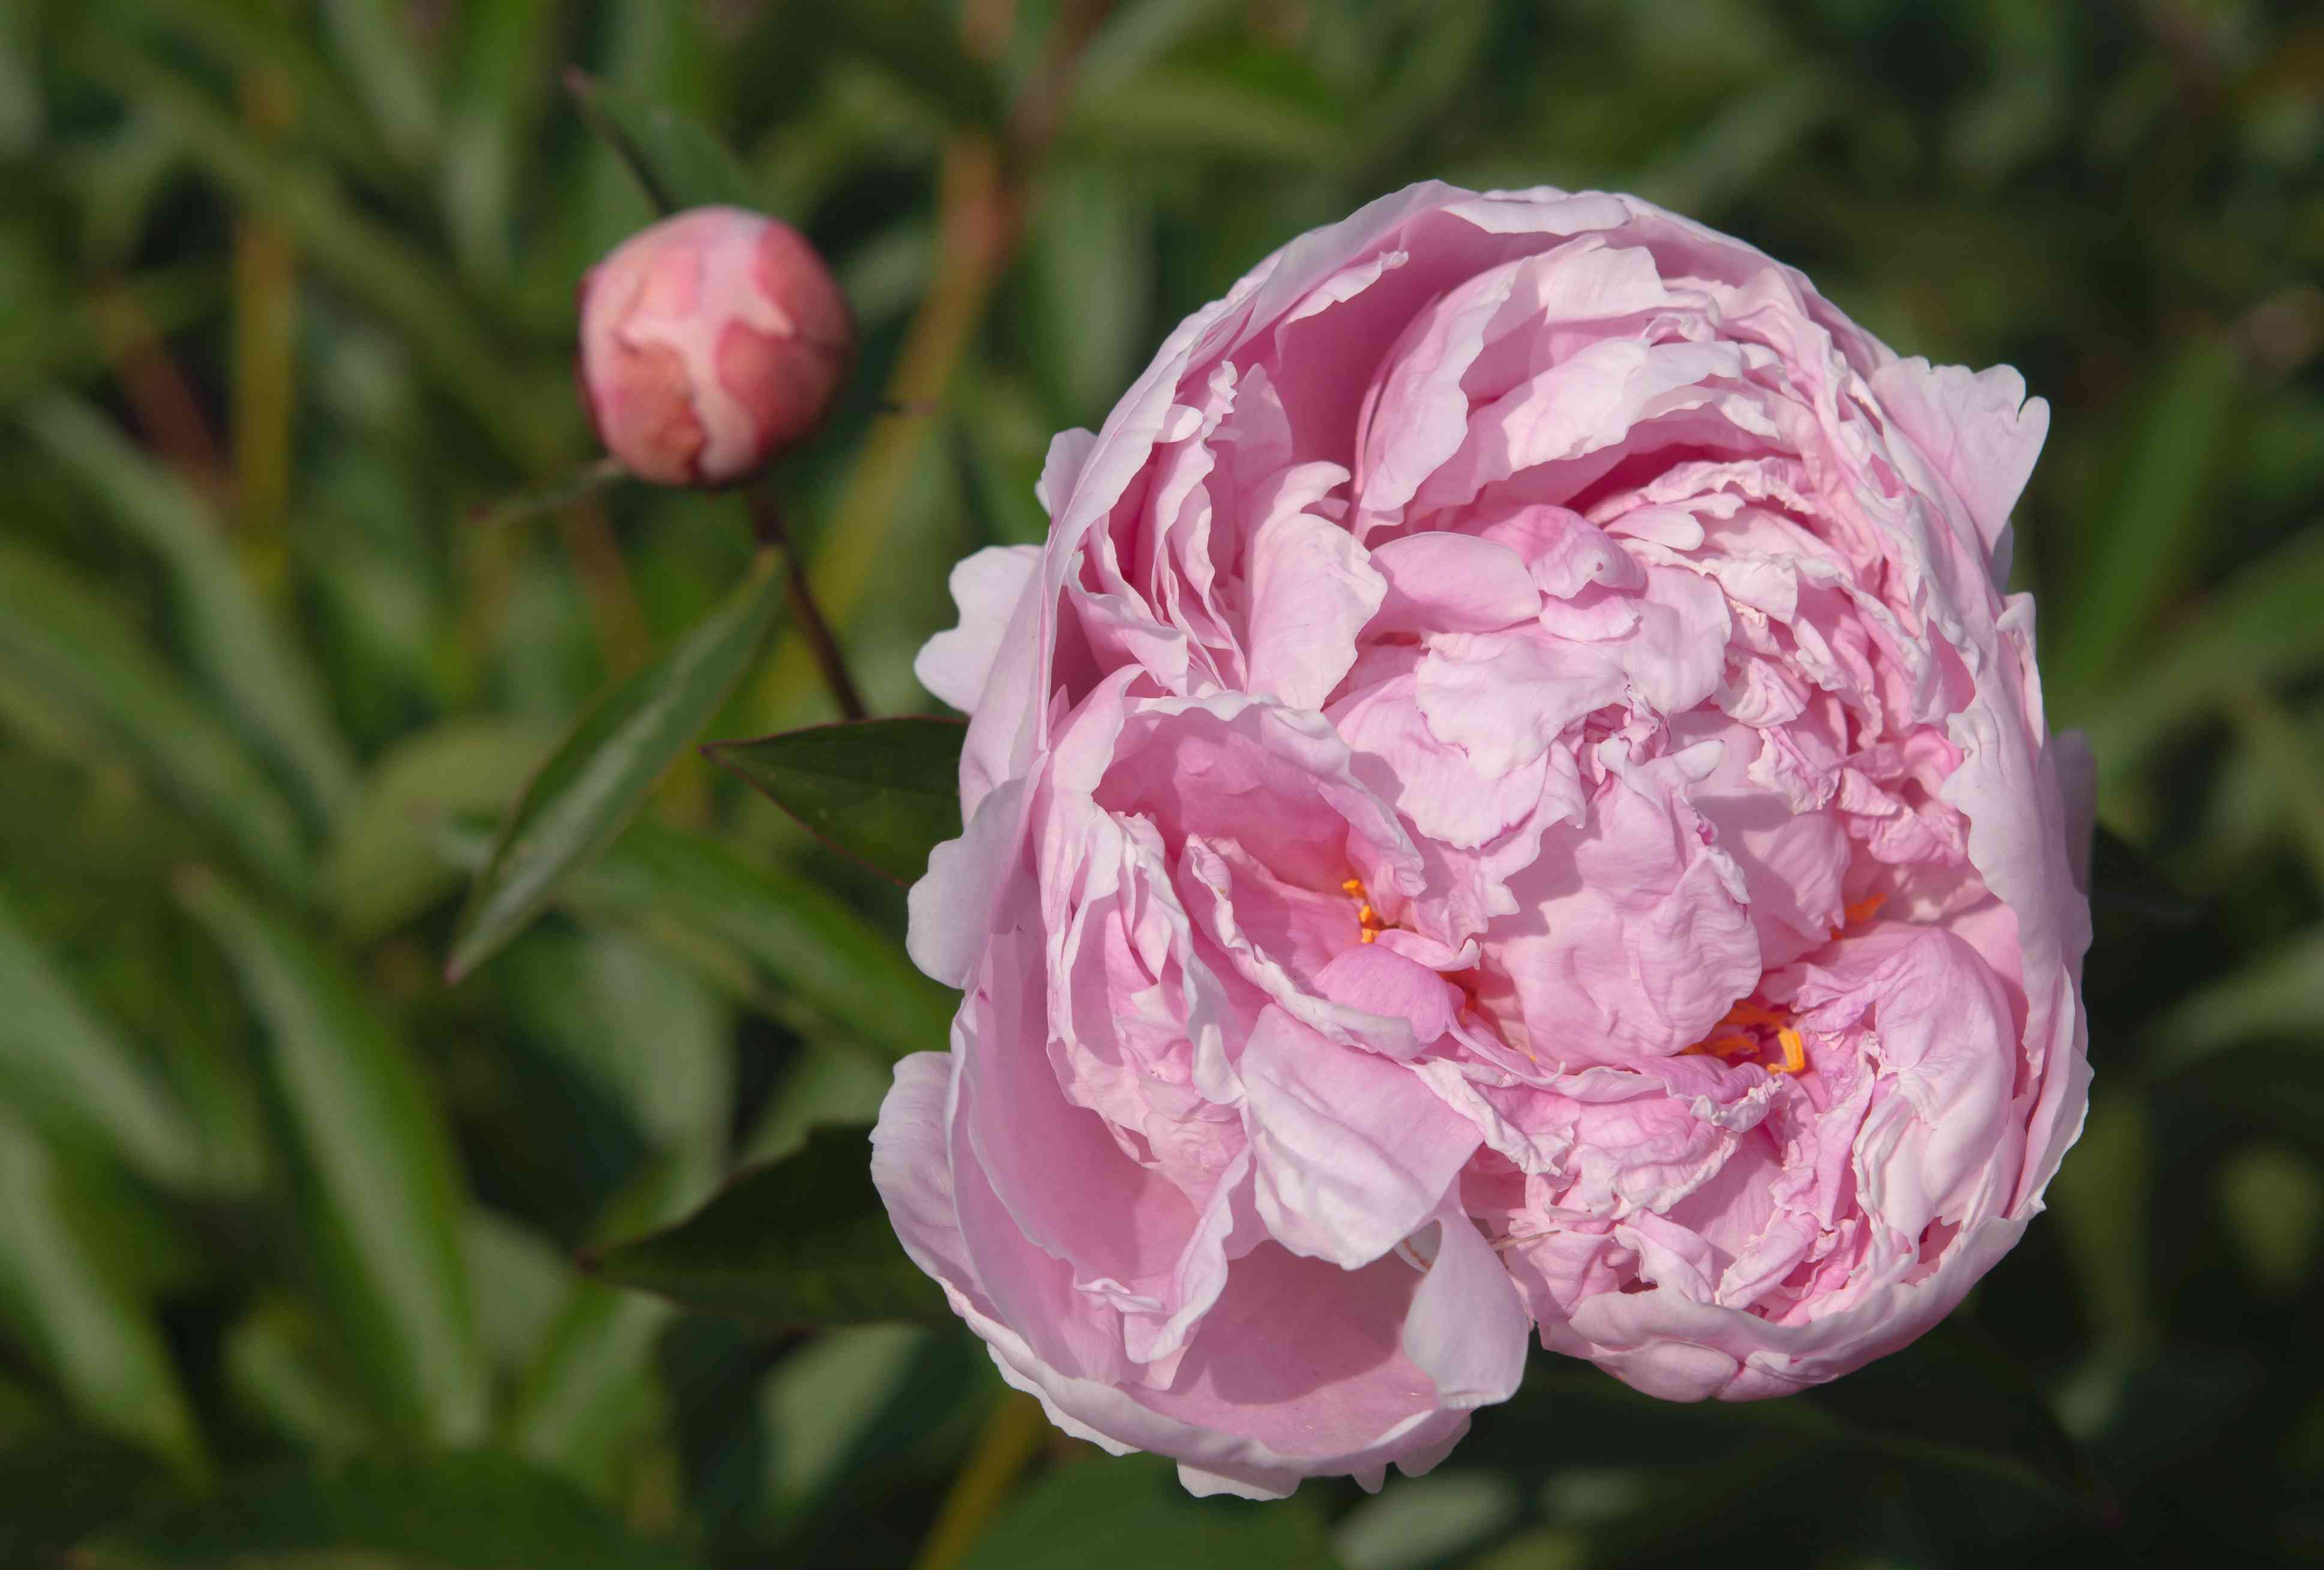 Sarah Bernhardt peony with rose-pink double flowers and bud on stem closeup